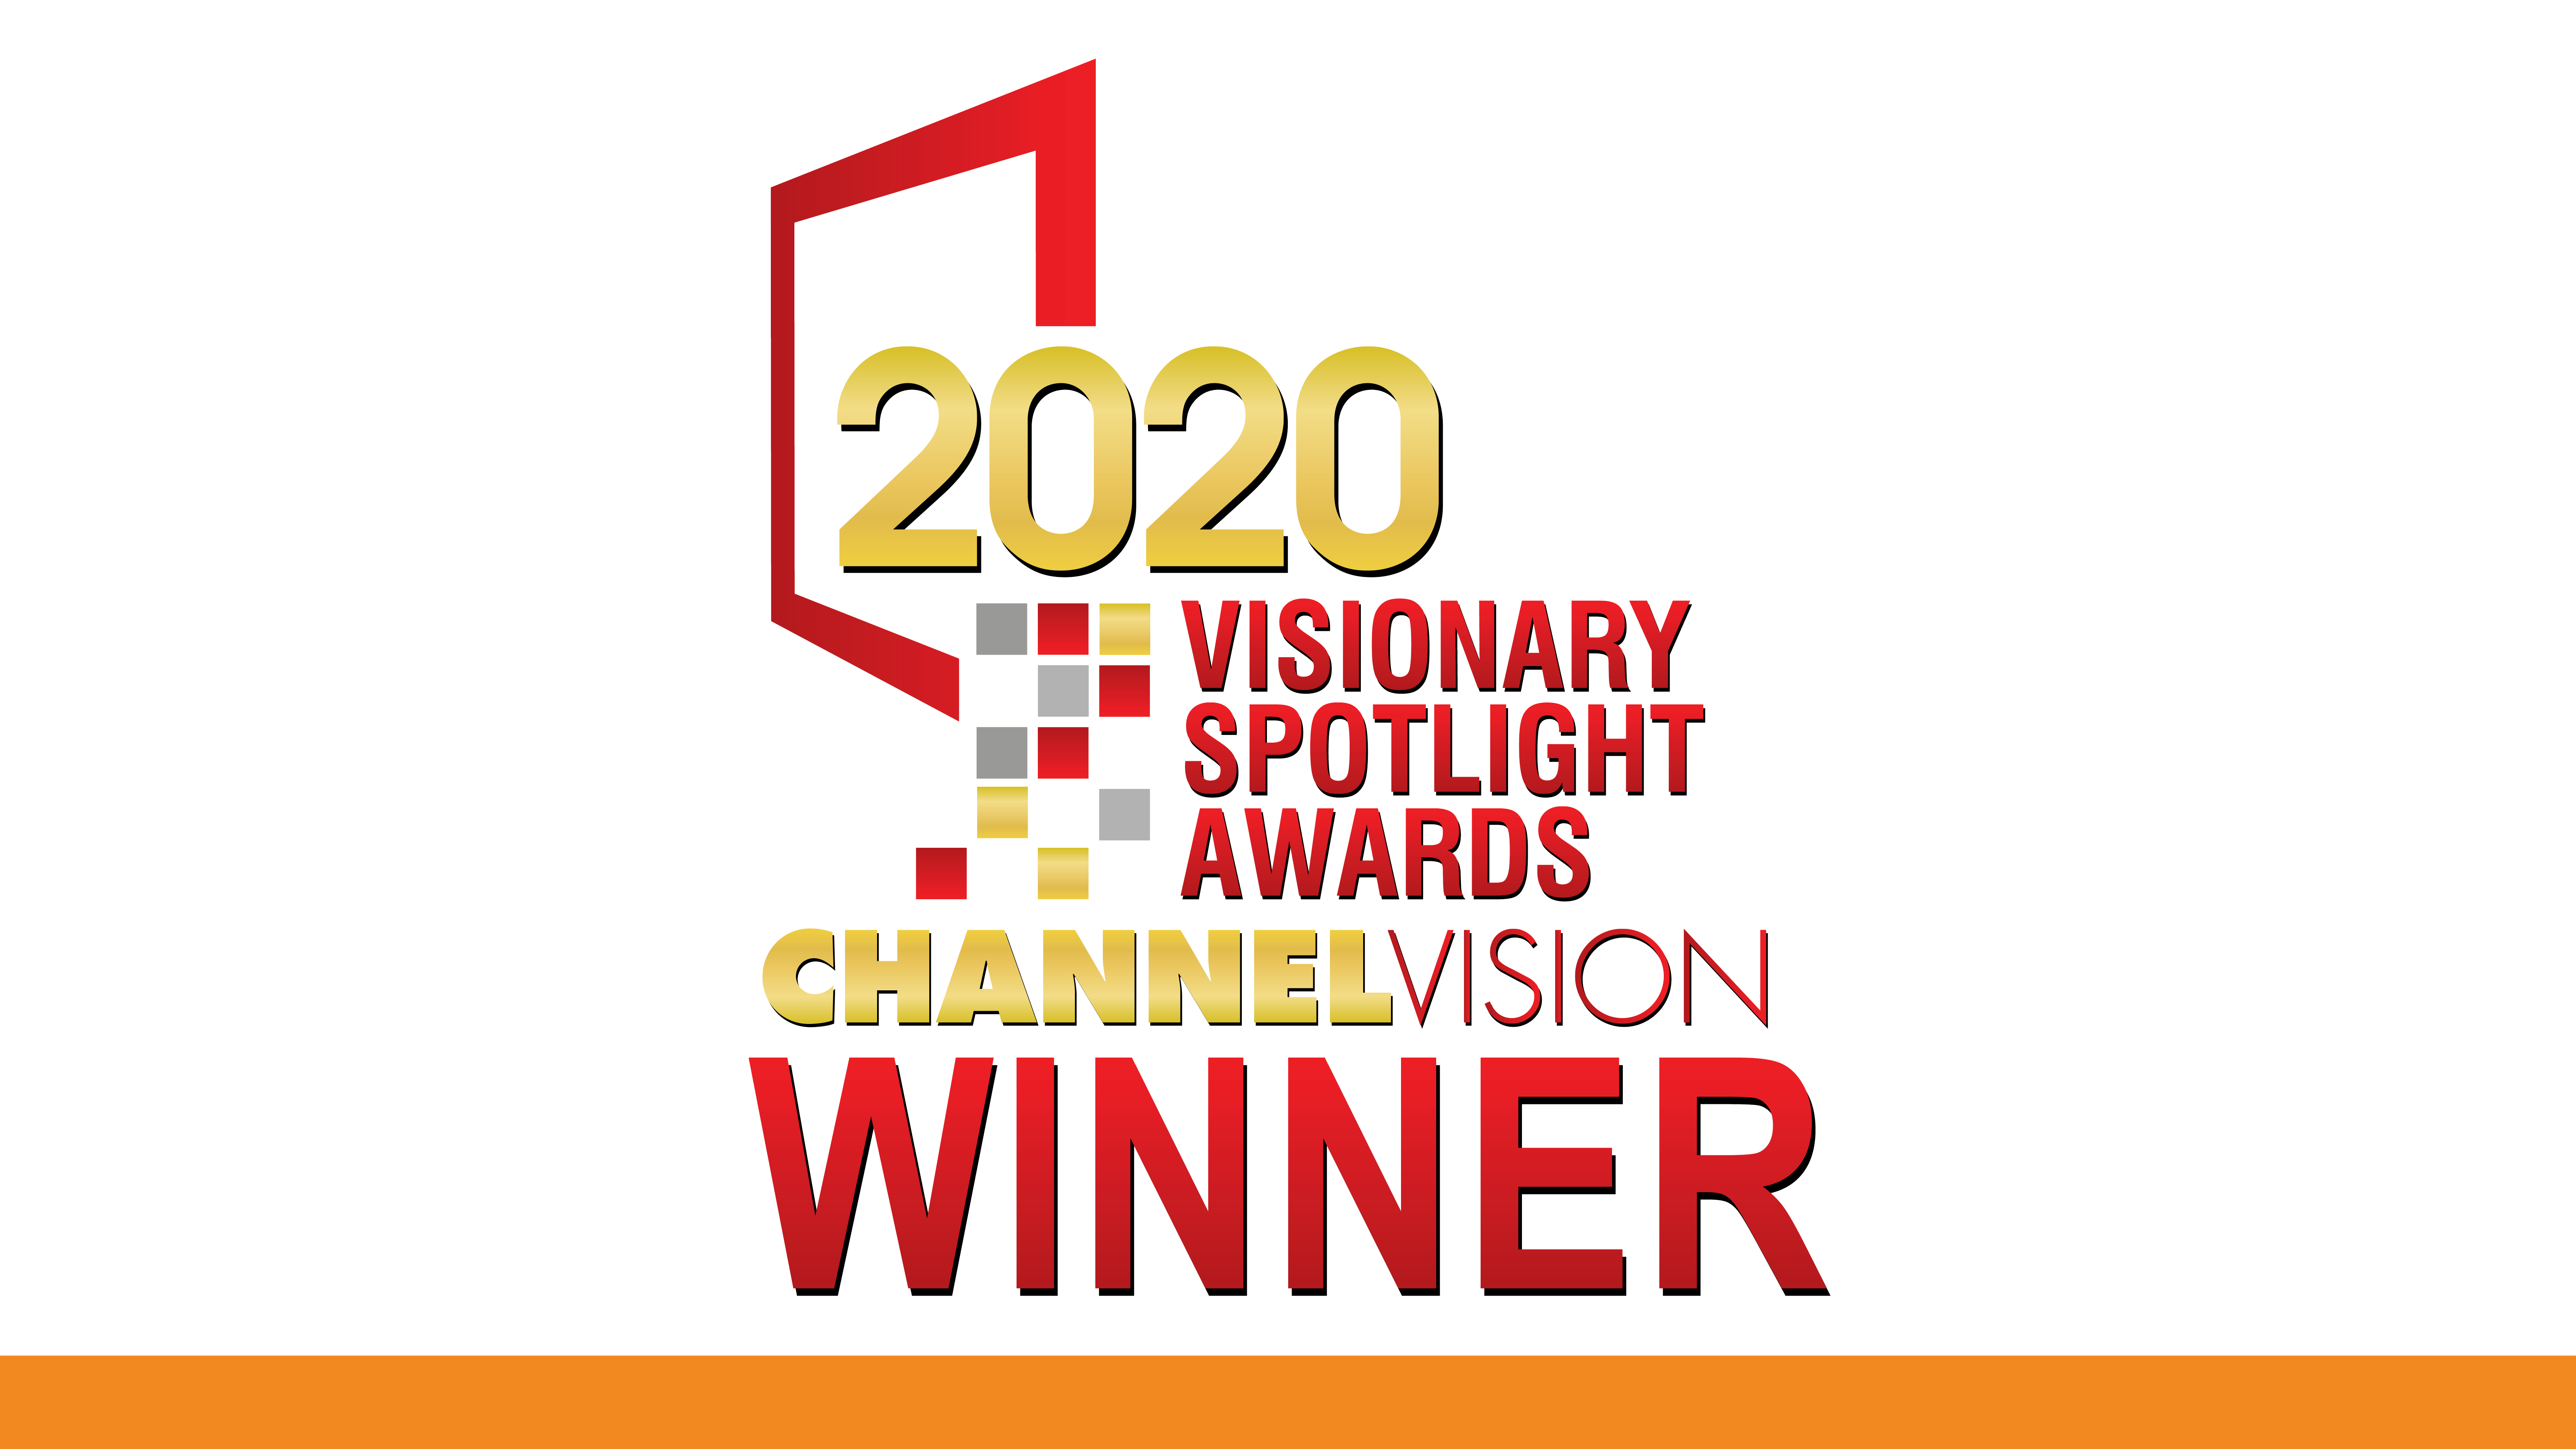 Reinvent Wins 2020 Visionary Spotlight Award